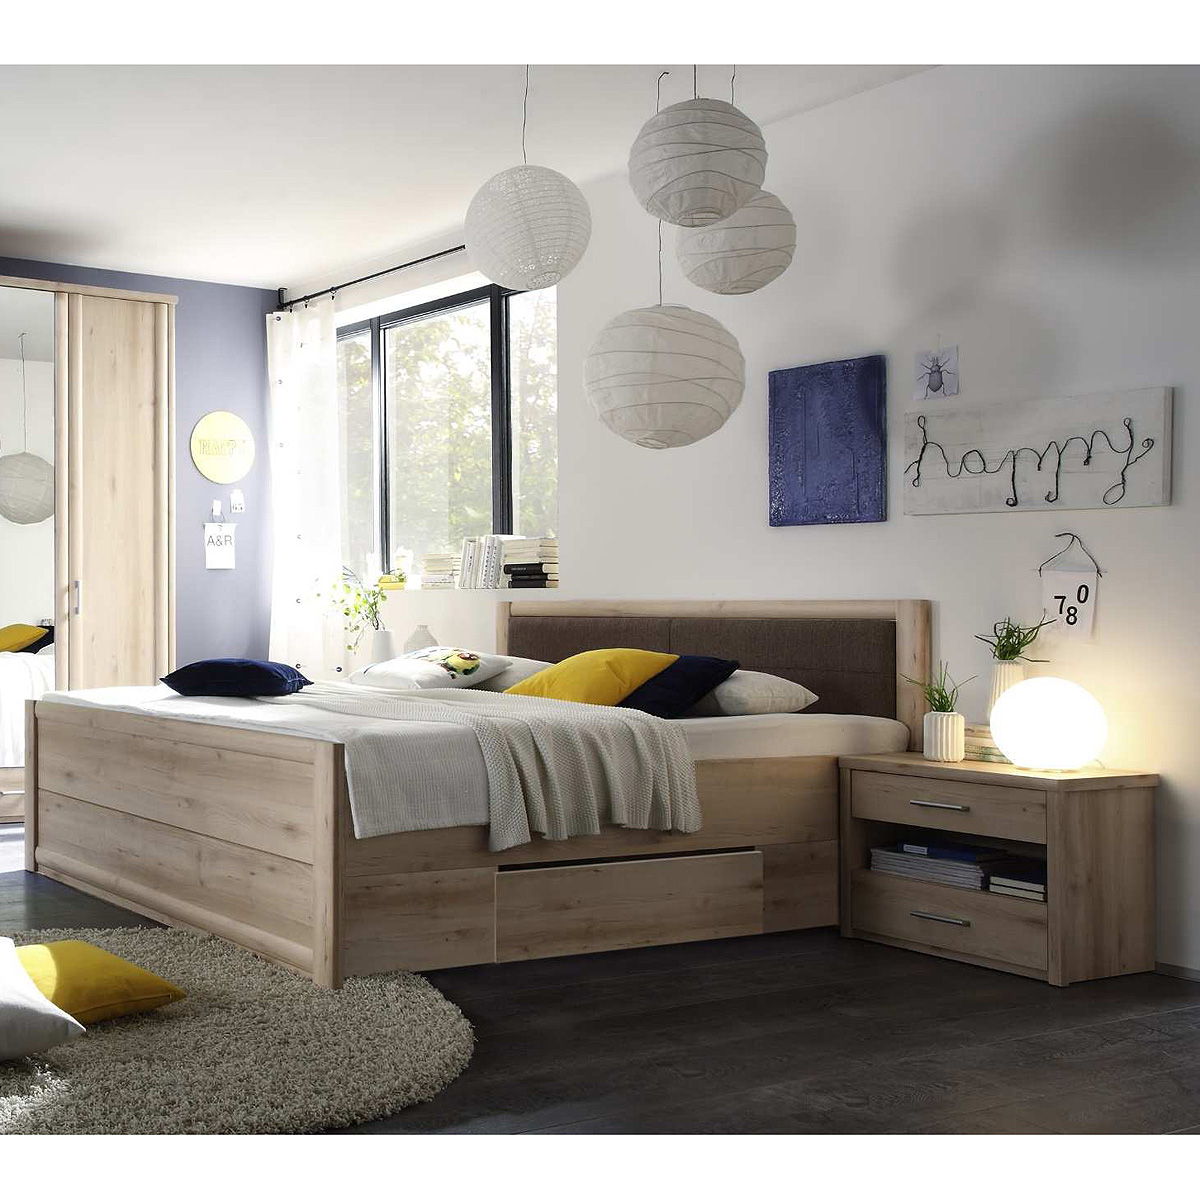 bettanlage classic bett nachtkommode in buche mit. Black Bedroom Furniture Sets. Home Design Ideas